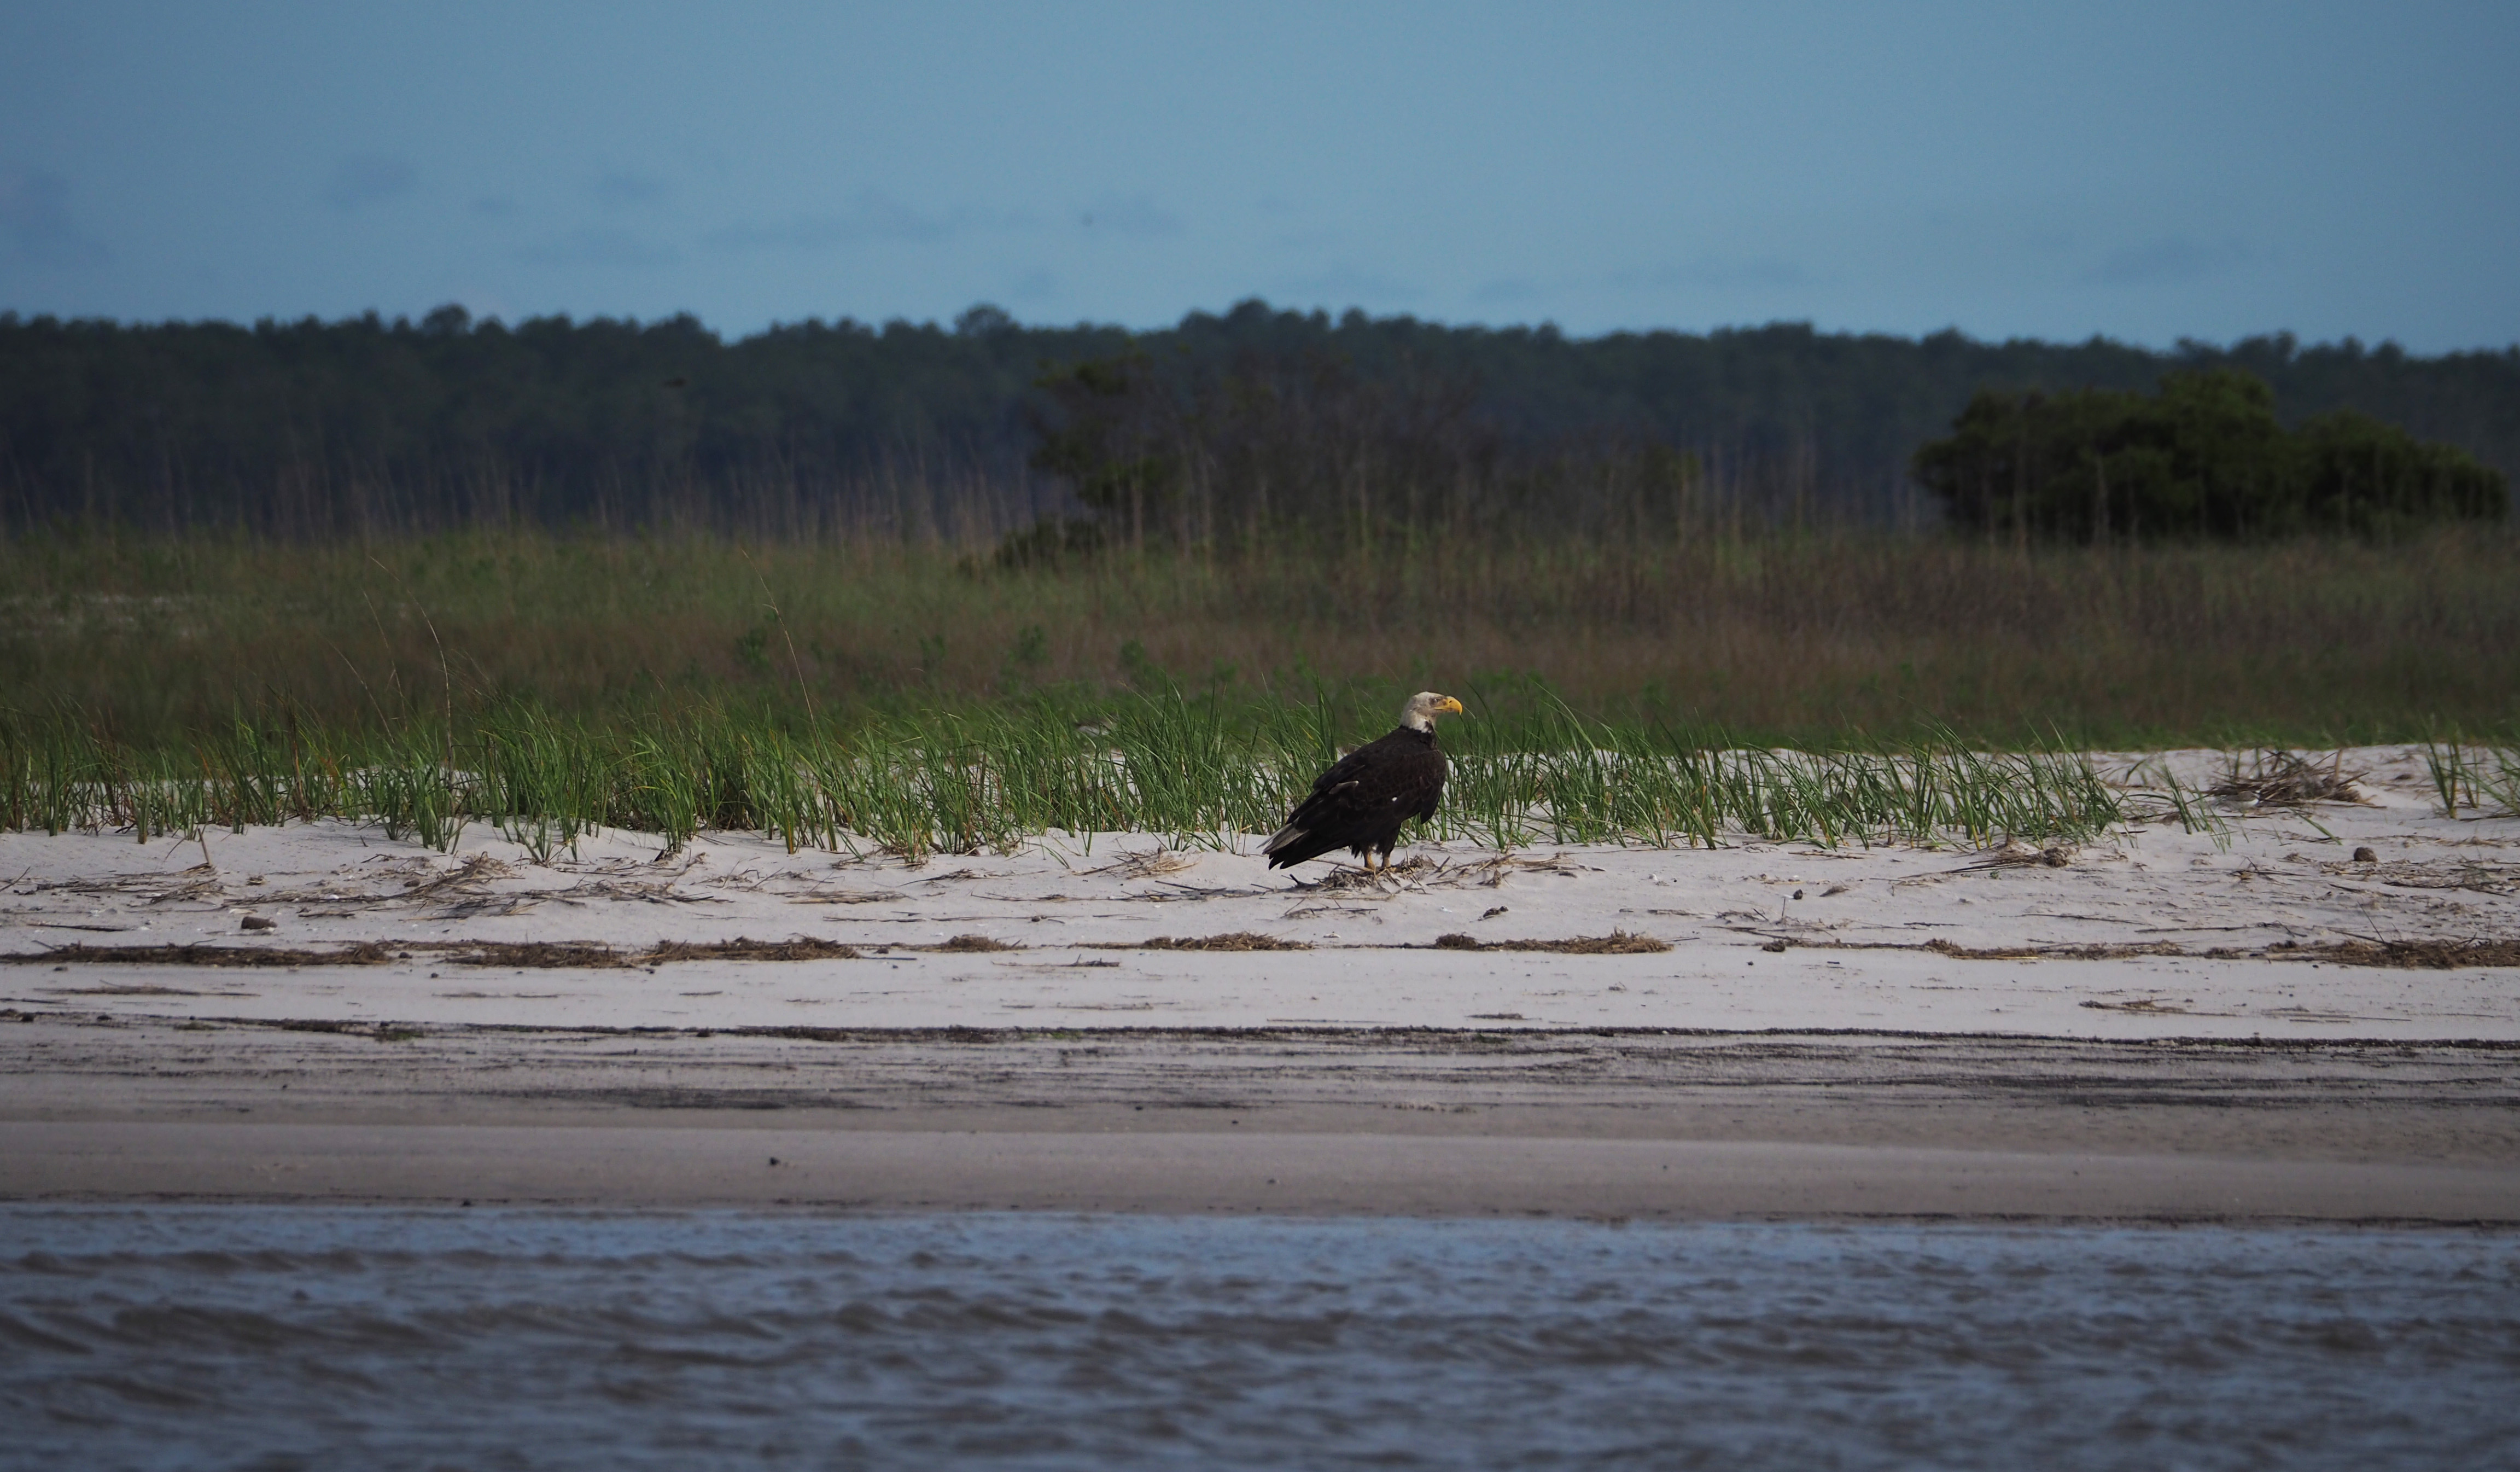 Our shorebird counts are sometimes disrupted, such as when this eagle decided to visit the beach in the middle of our count.